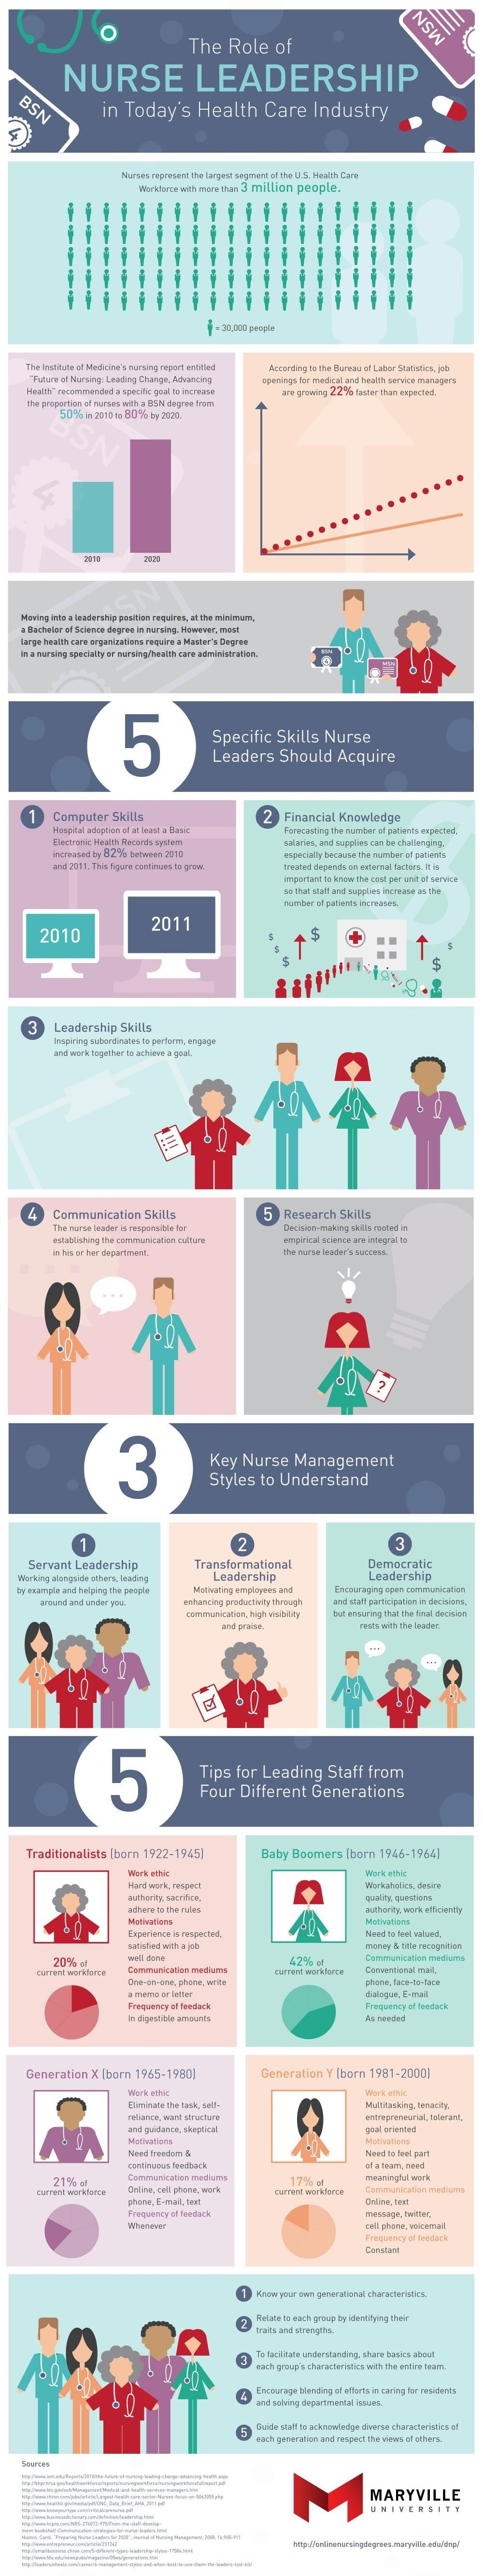 The Role of Nurse Leadership in Today's Health Care Industry #infographic